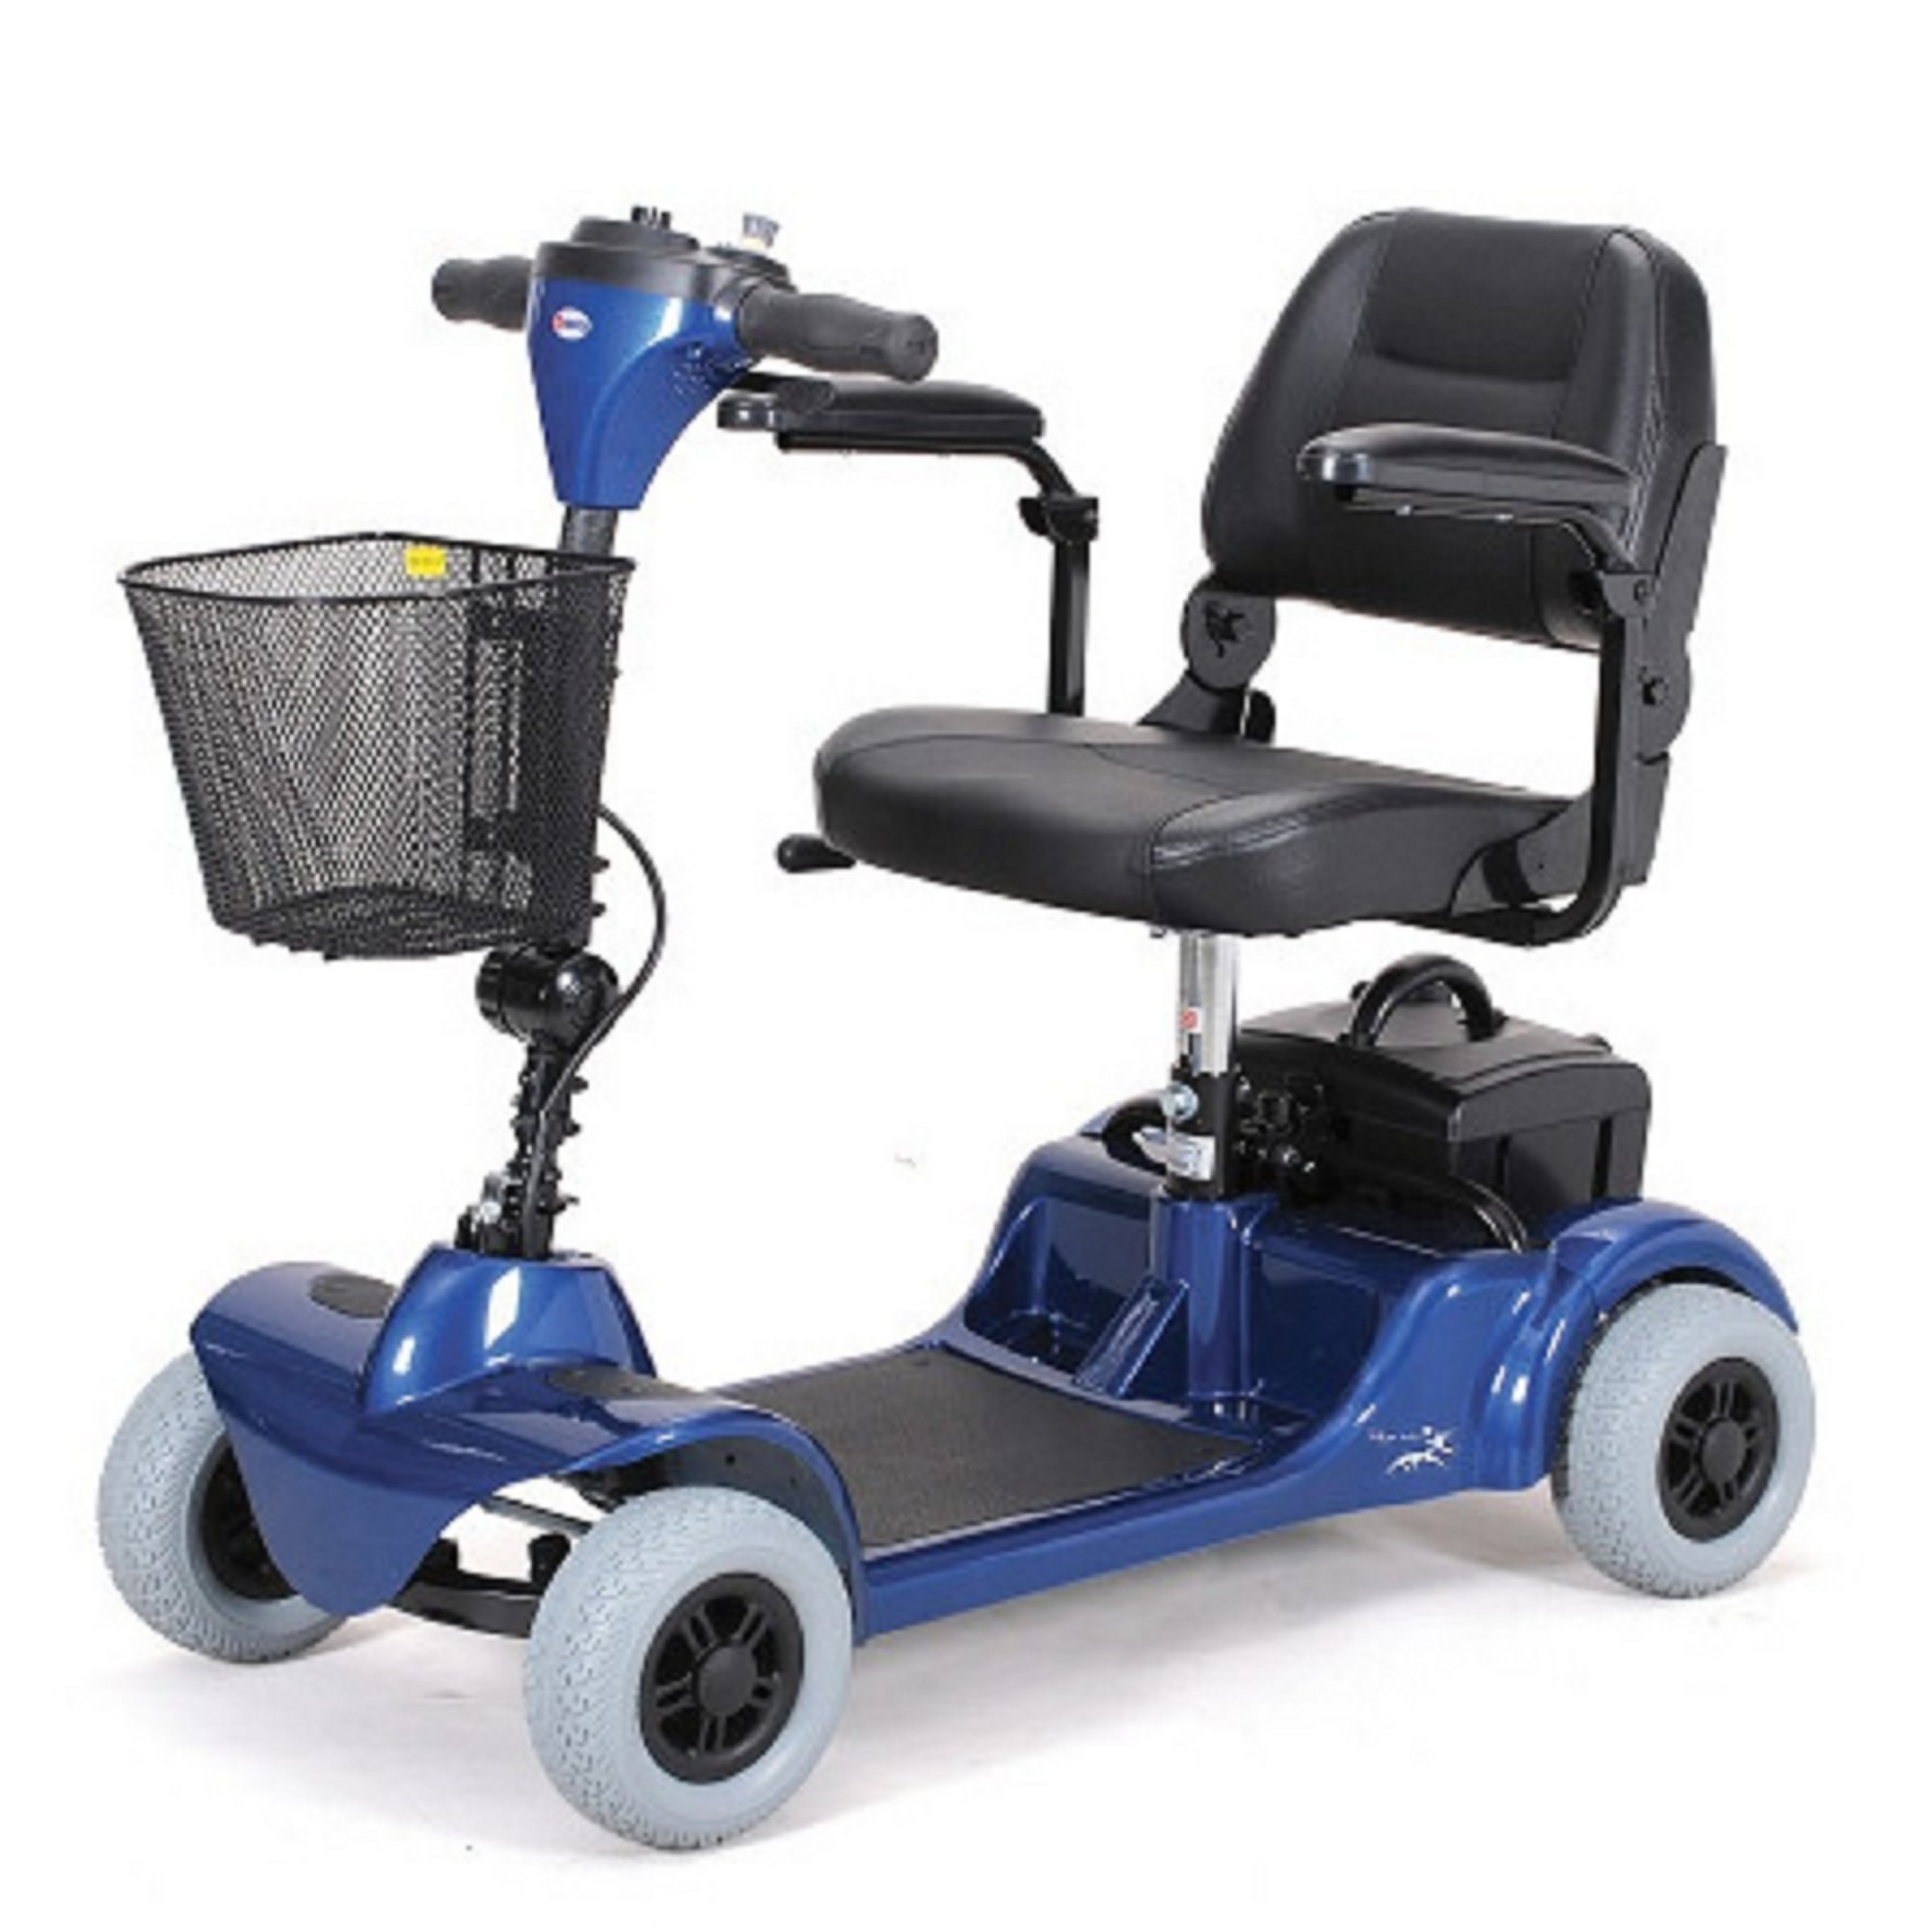 Merits Health Products - Mini Coupe - 4-Wheel Super Micro Electric Scooter - 16.5''W x 15.5''D - Blue